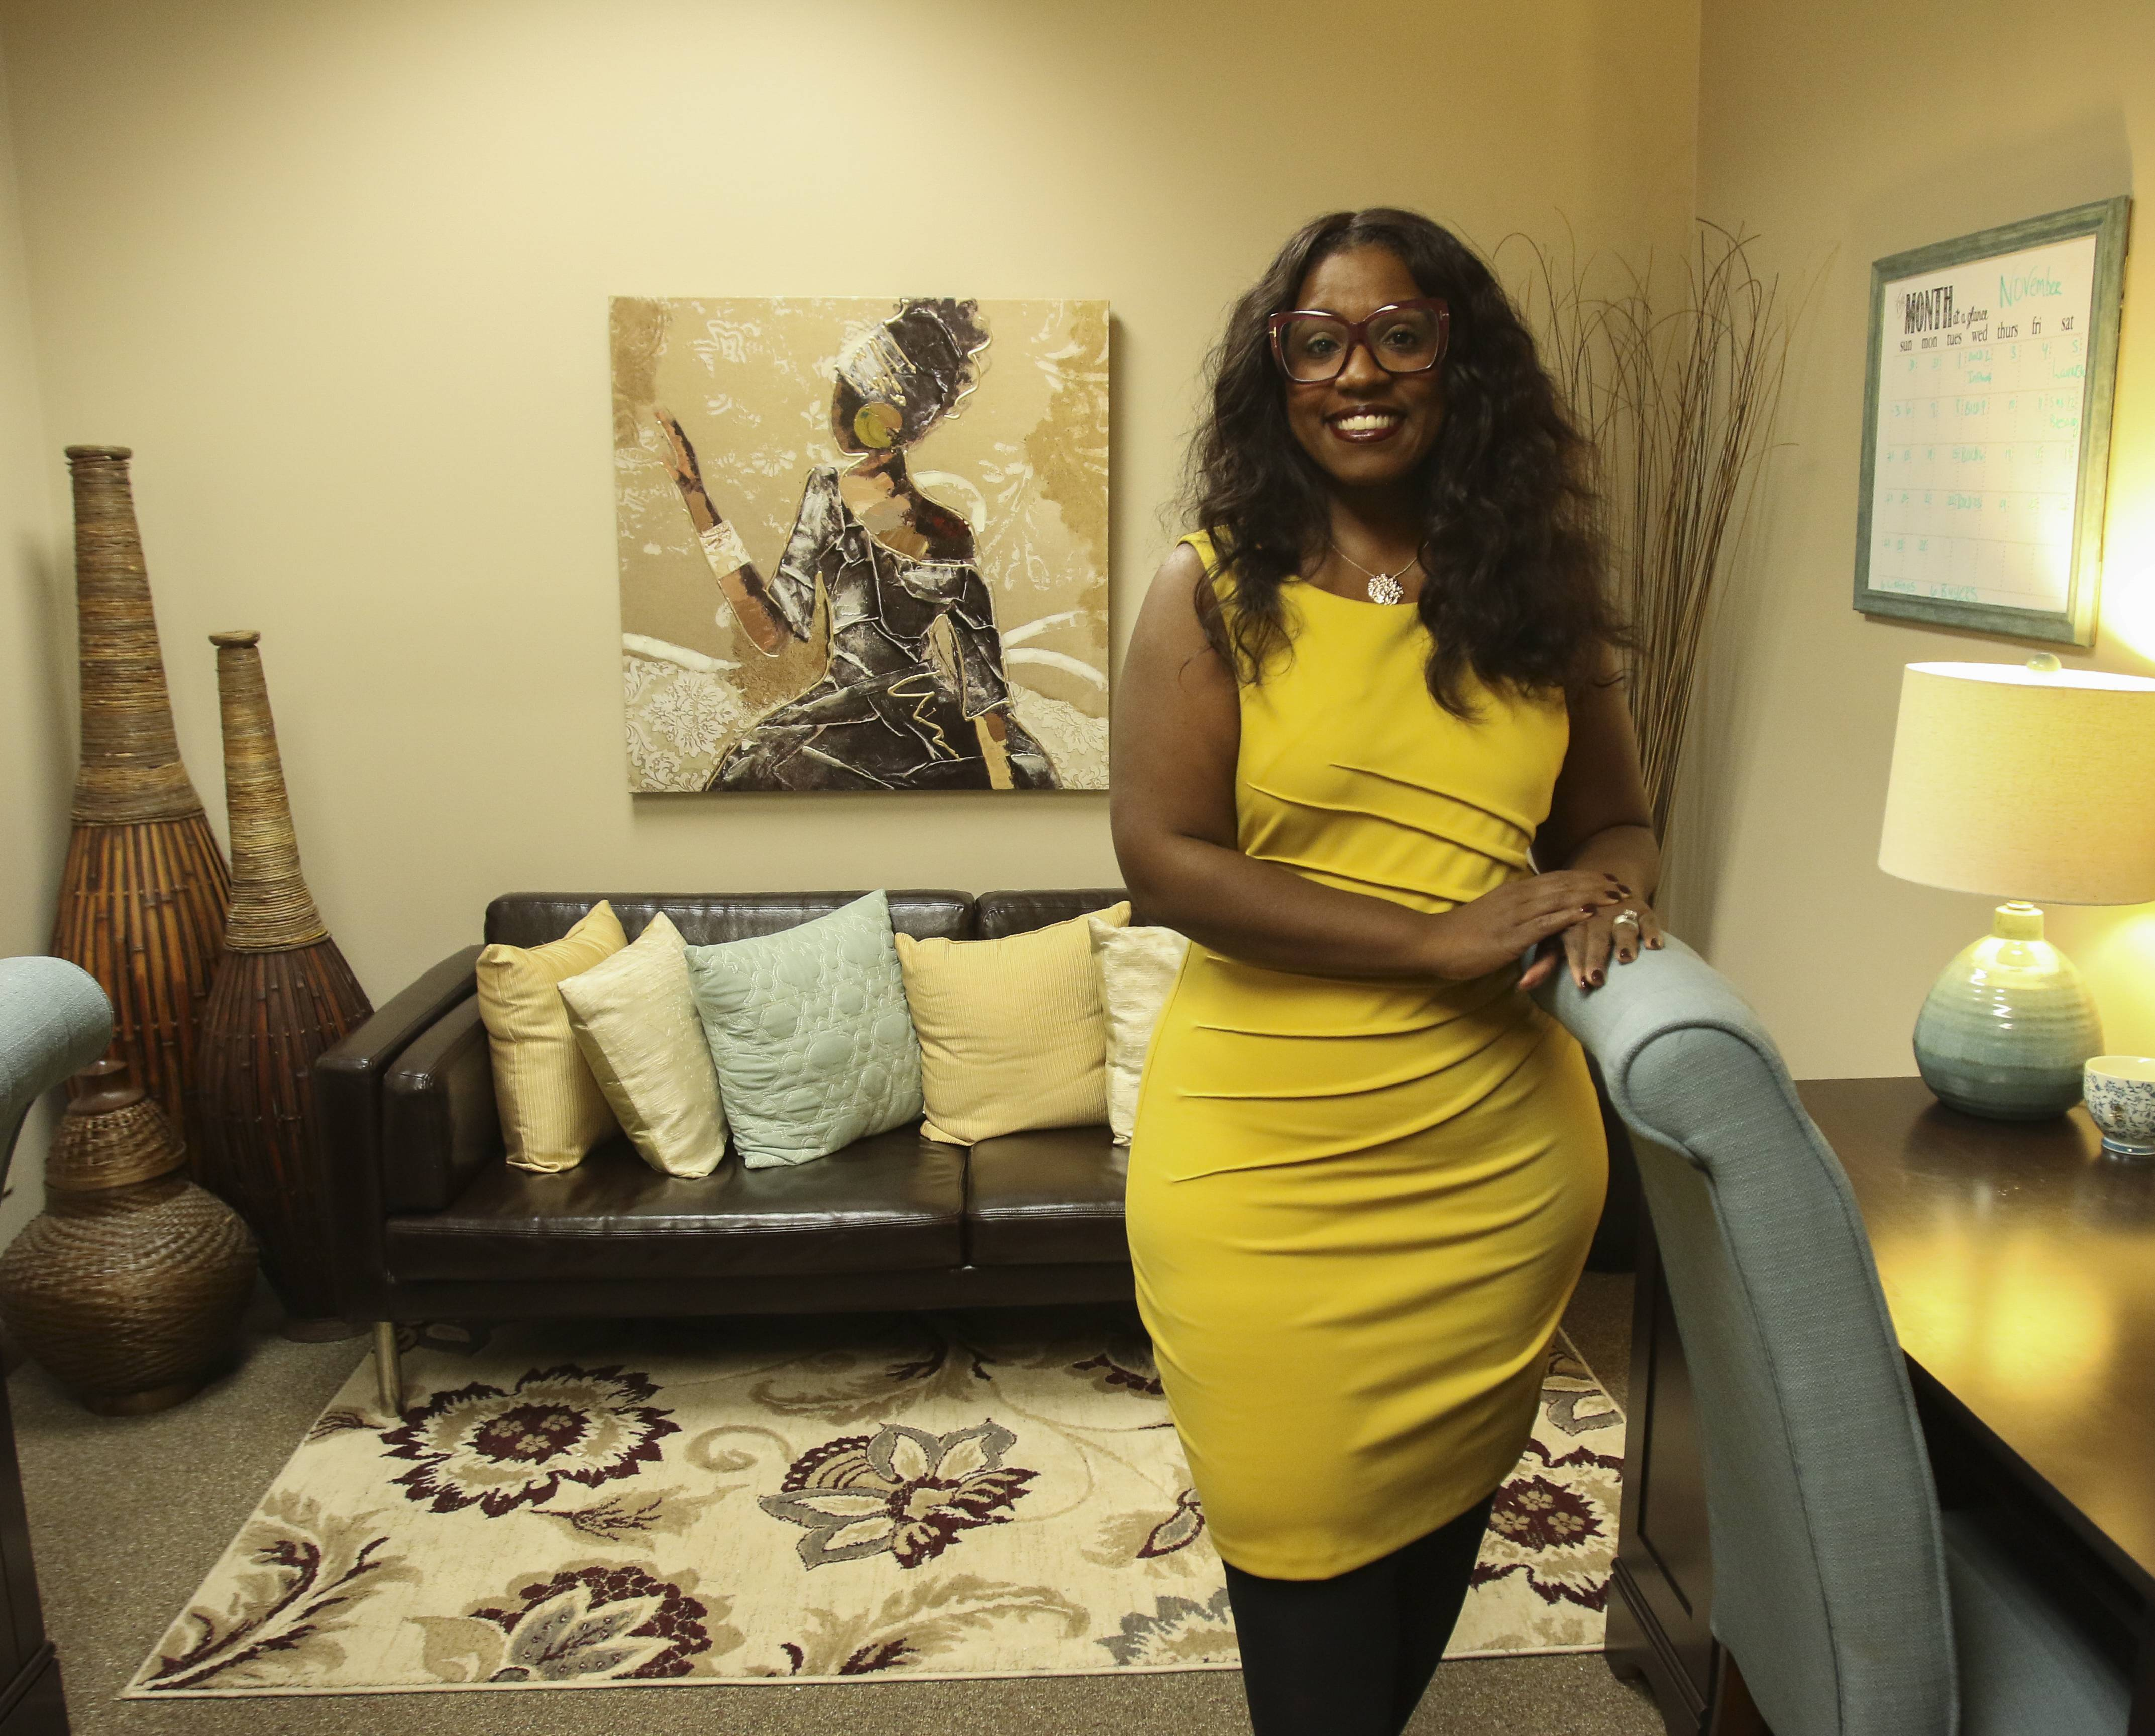 An influential woman: Weatherspoon strives ahead, leads by example